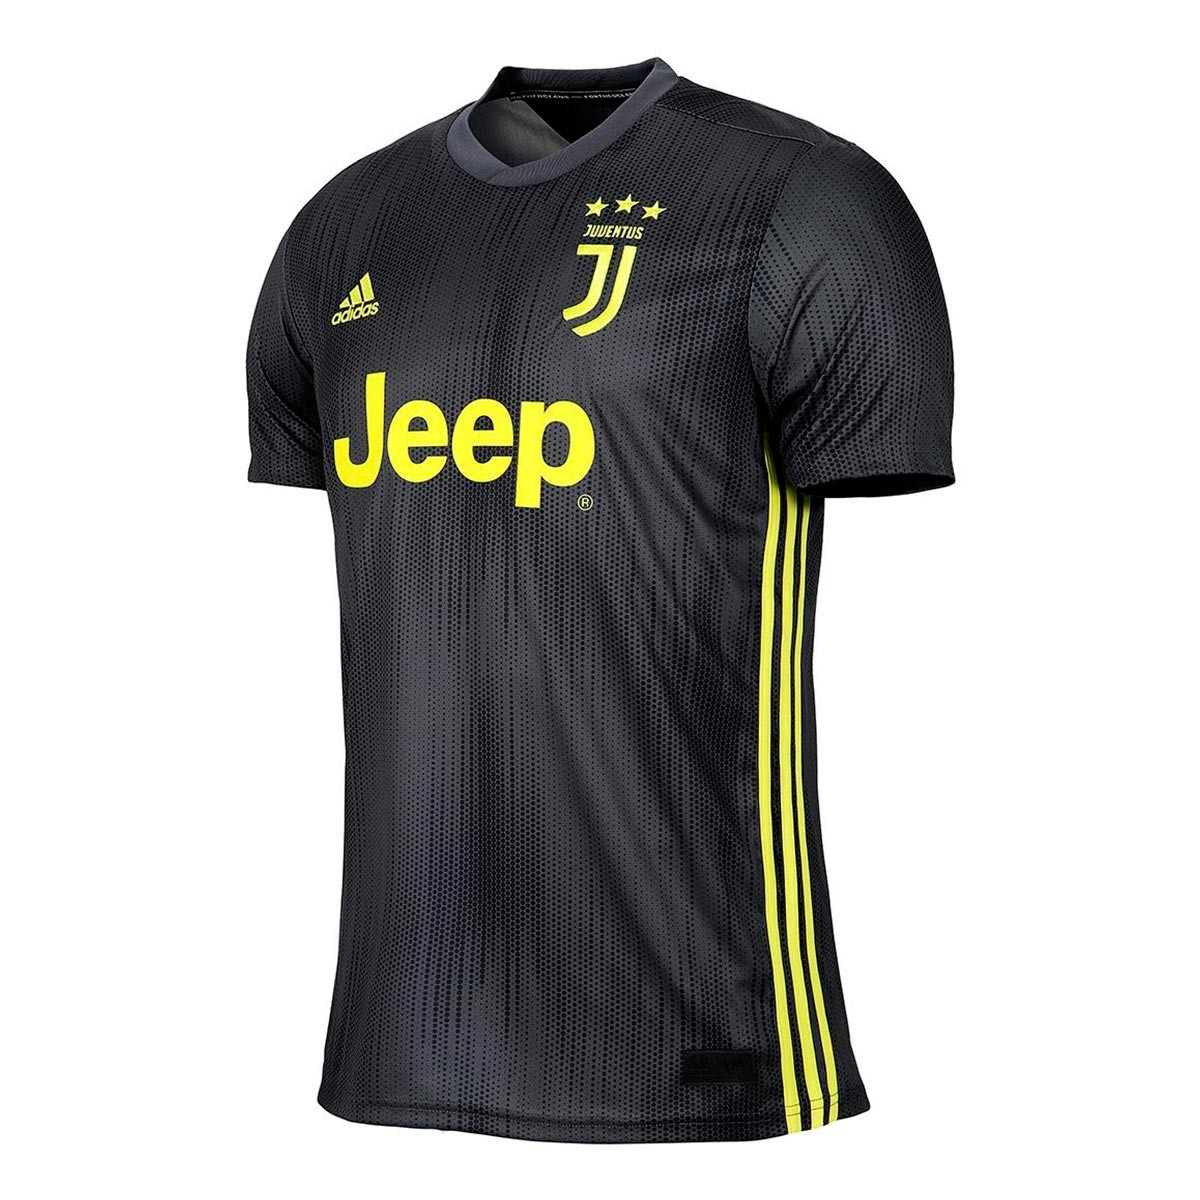 jersey adidas juventus 2018 2019 third carbon shock yellow football store futbol emotion adidas juventus 2018 2019 third jersey